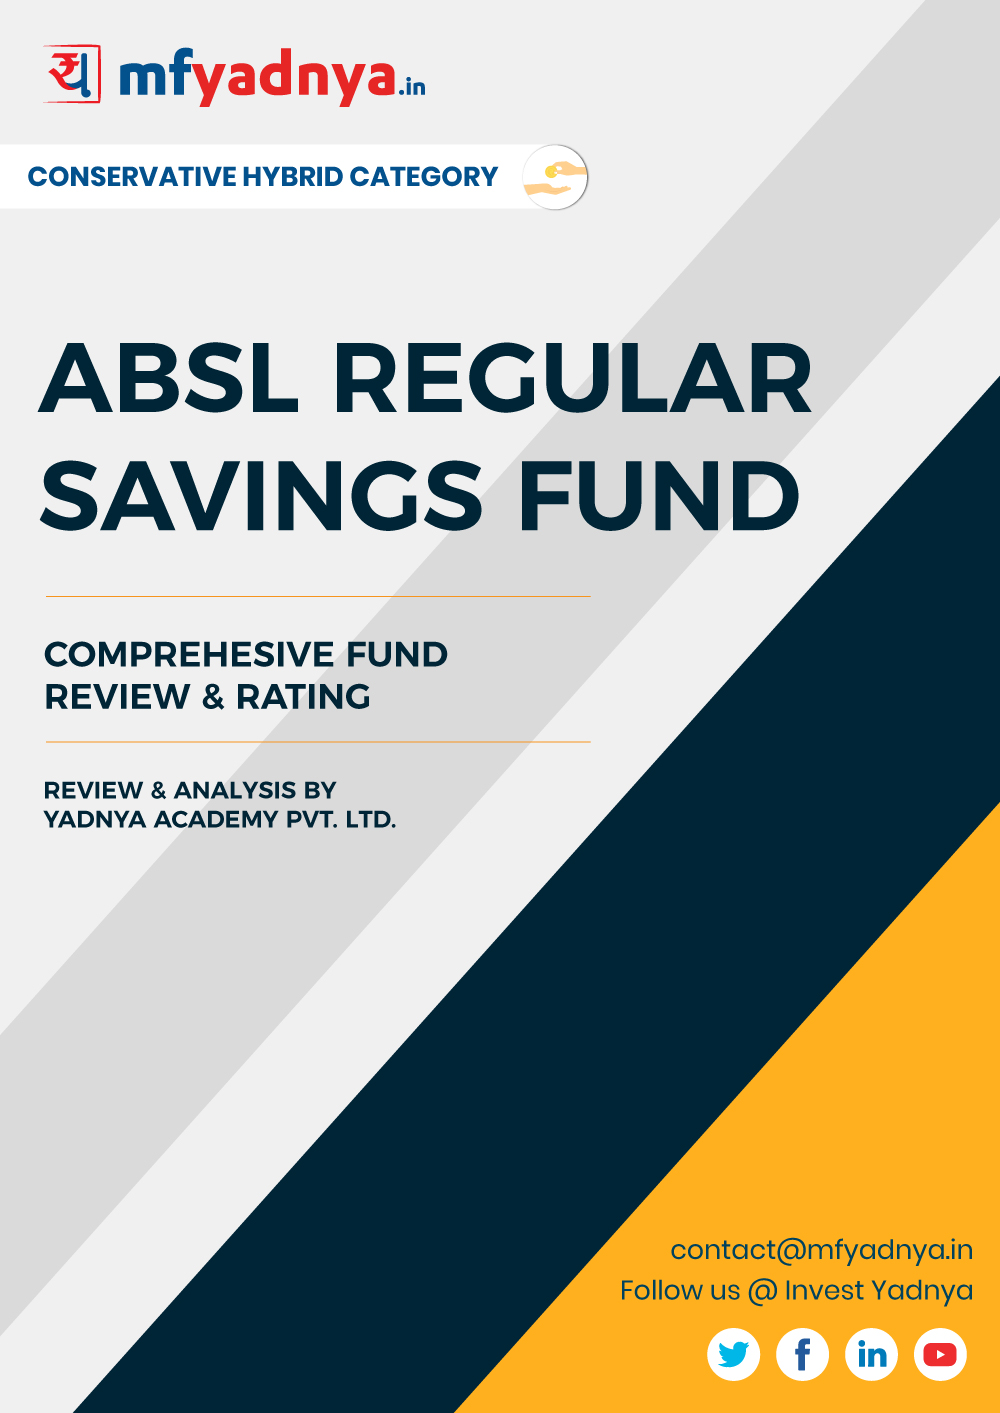 This e-book offers a comprehensive mutual fund review of ABSL Regular Saving Fund . It reviews the fund's return, ratio, allocation etc. ✔ Detailed Mutual Fund Analysis ✔ Latest Research Reports